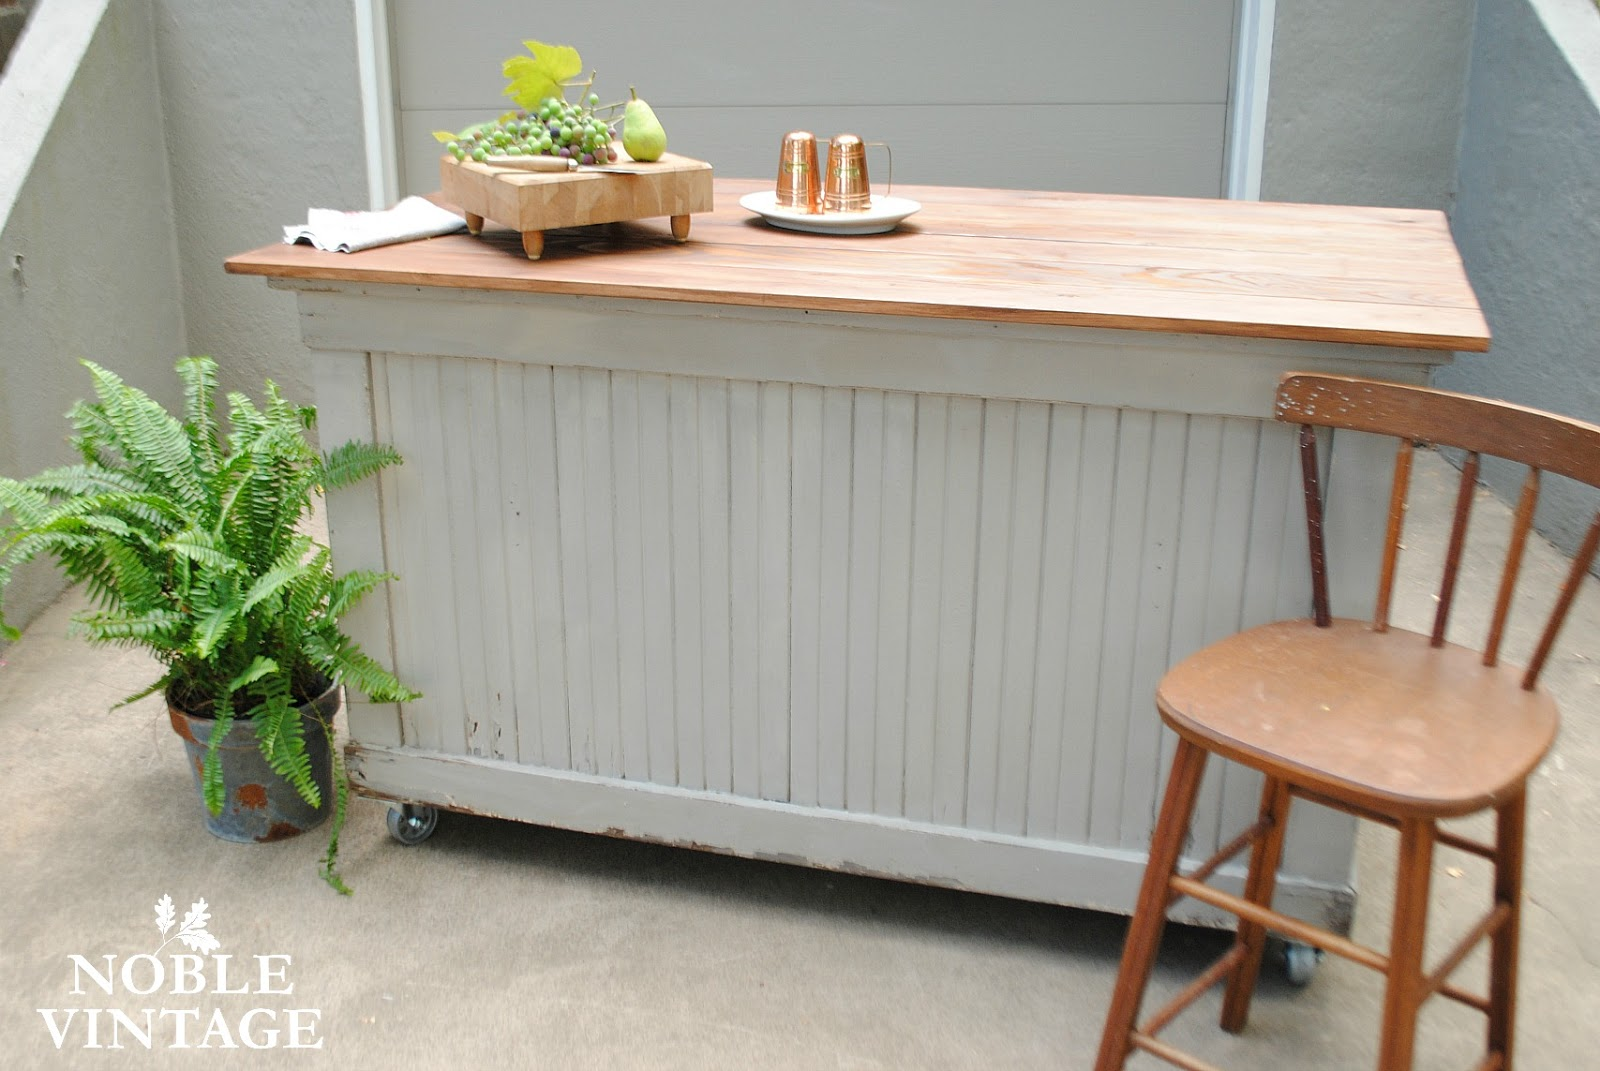 Trend industrial gray kitchen island makeover and the joy of finding fruit